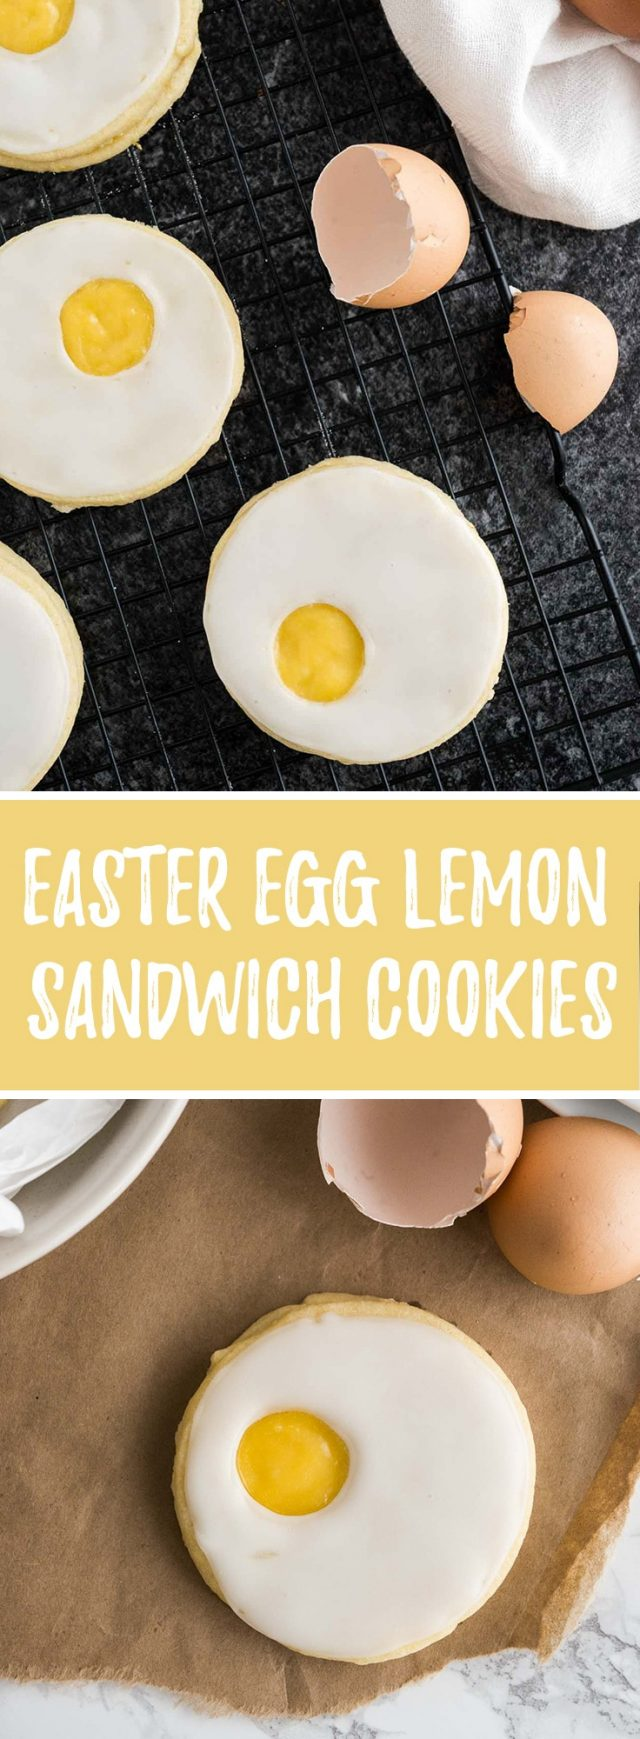 These cute Easter Sugar Cookies are bursting with flavor! Filled with lemon curd and topped with lemon icing, these egg-shaped sandwich cookies are a fun treat for your Easter celebration.